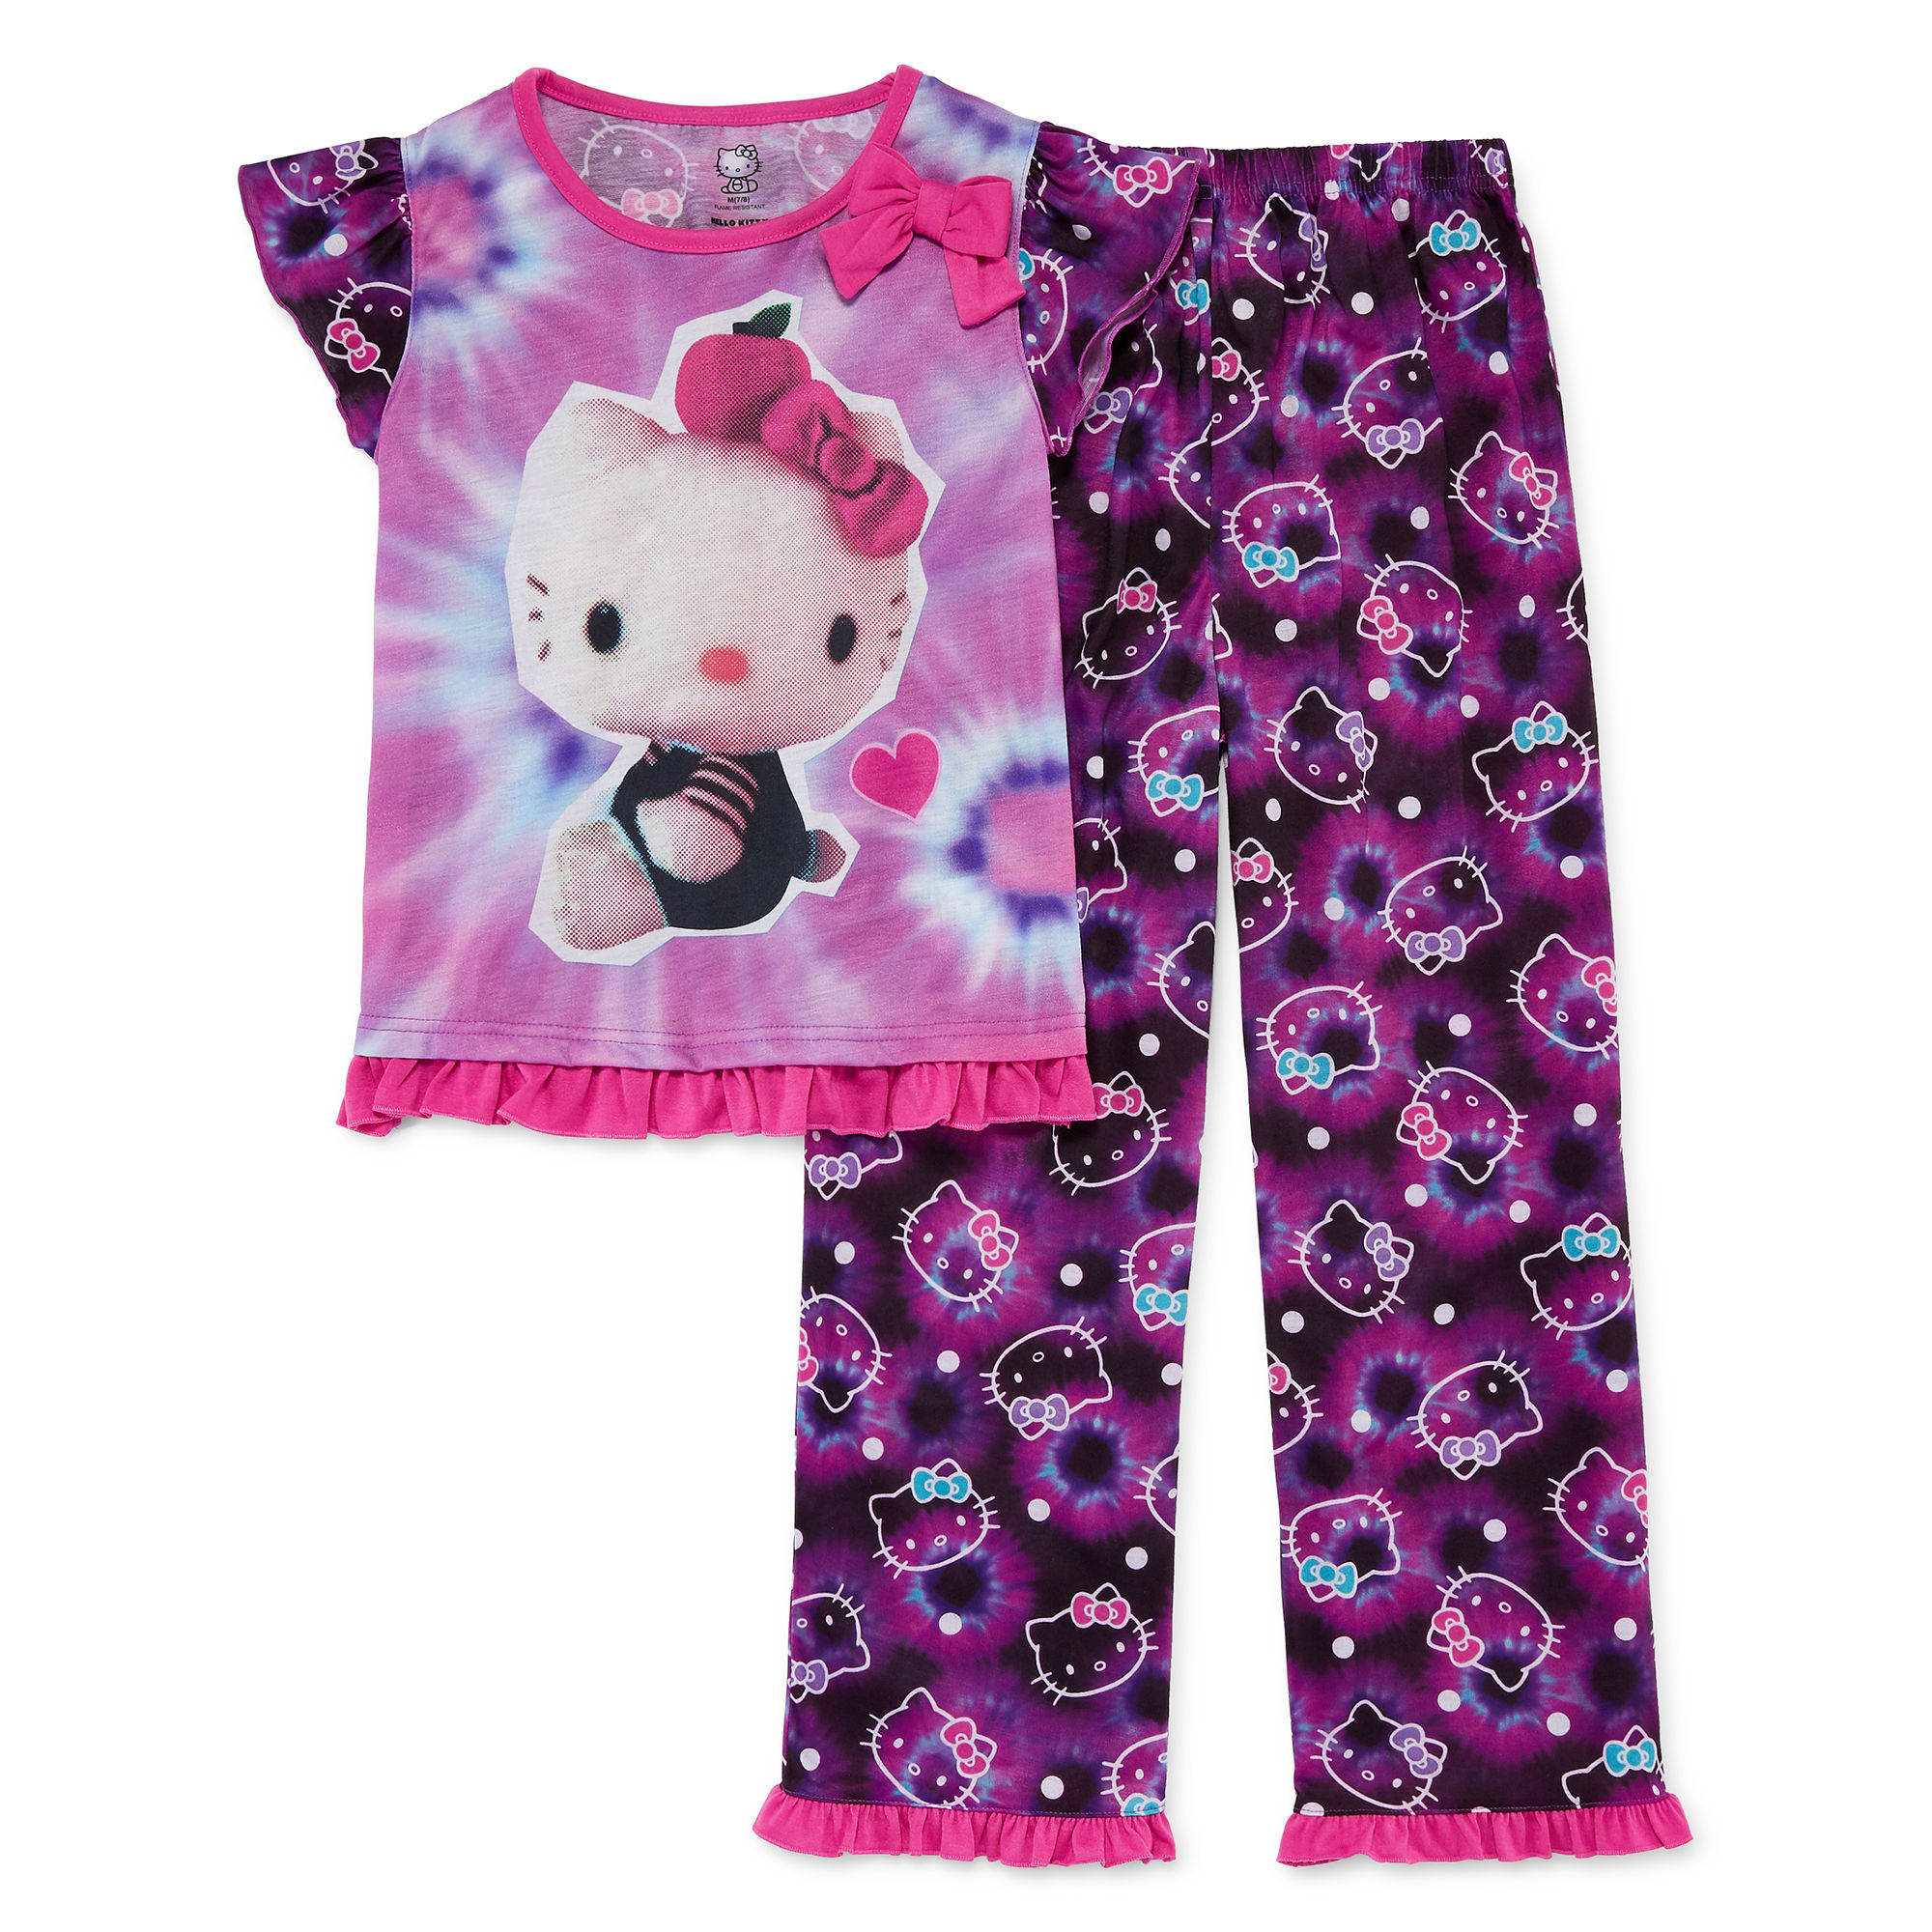 Hello Kitty 2-pc. Sleep Shirt and Pants Set - Girls